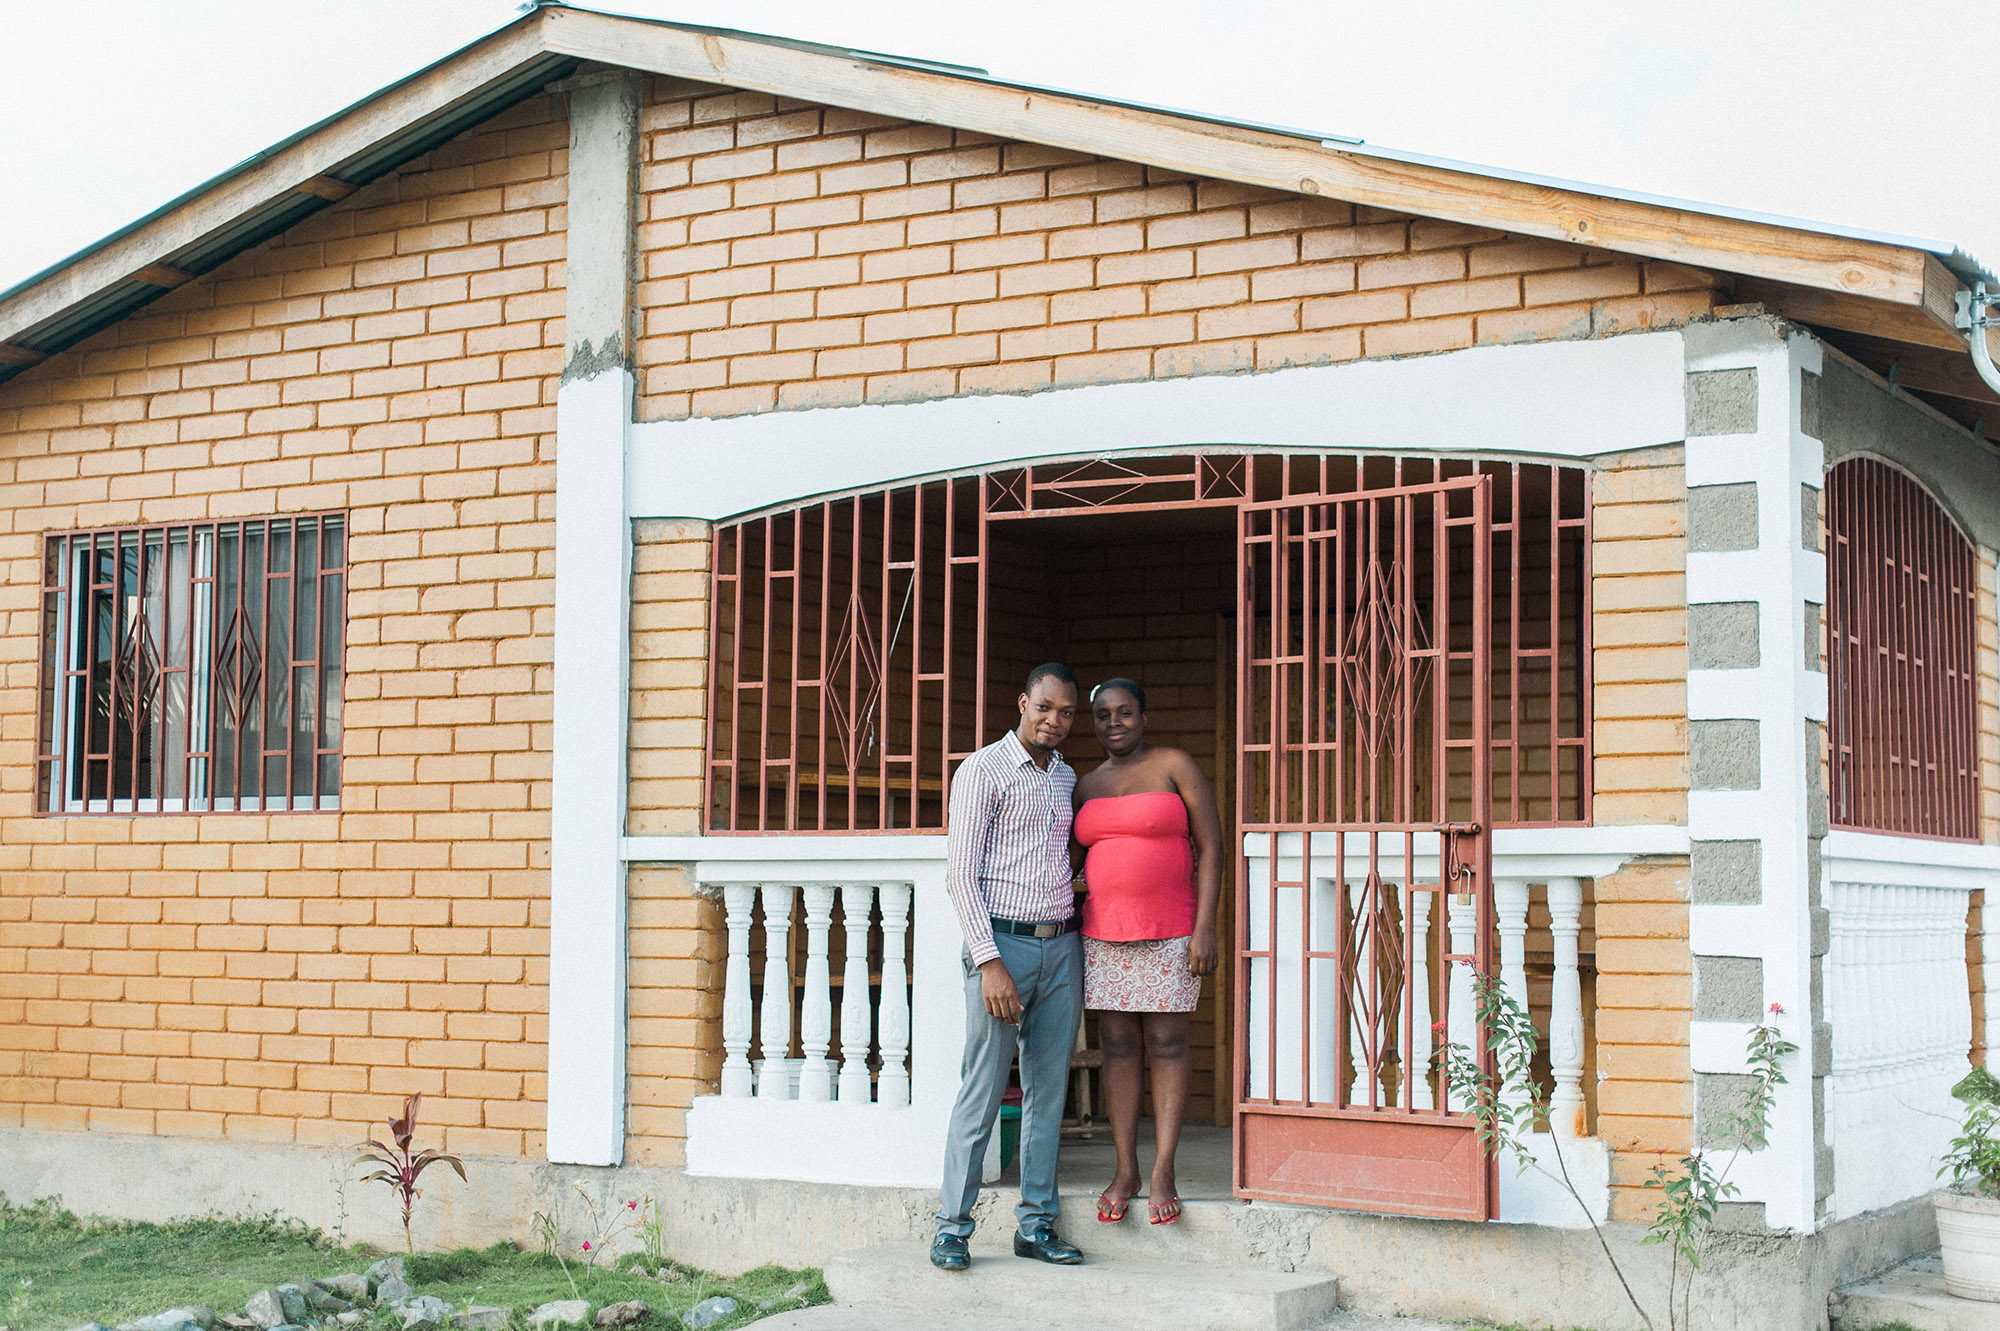 Manuacha and her husband stand on the front porch of their new earth block home, provided by PKF.